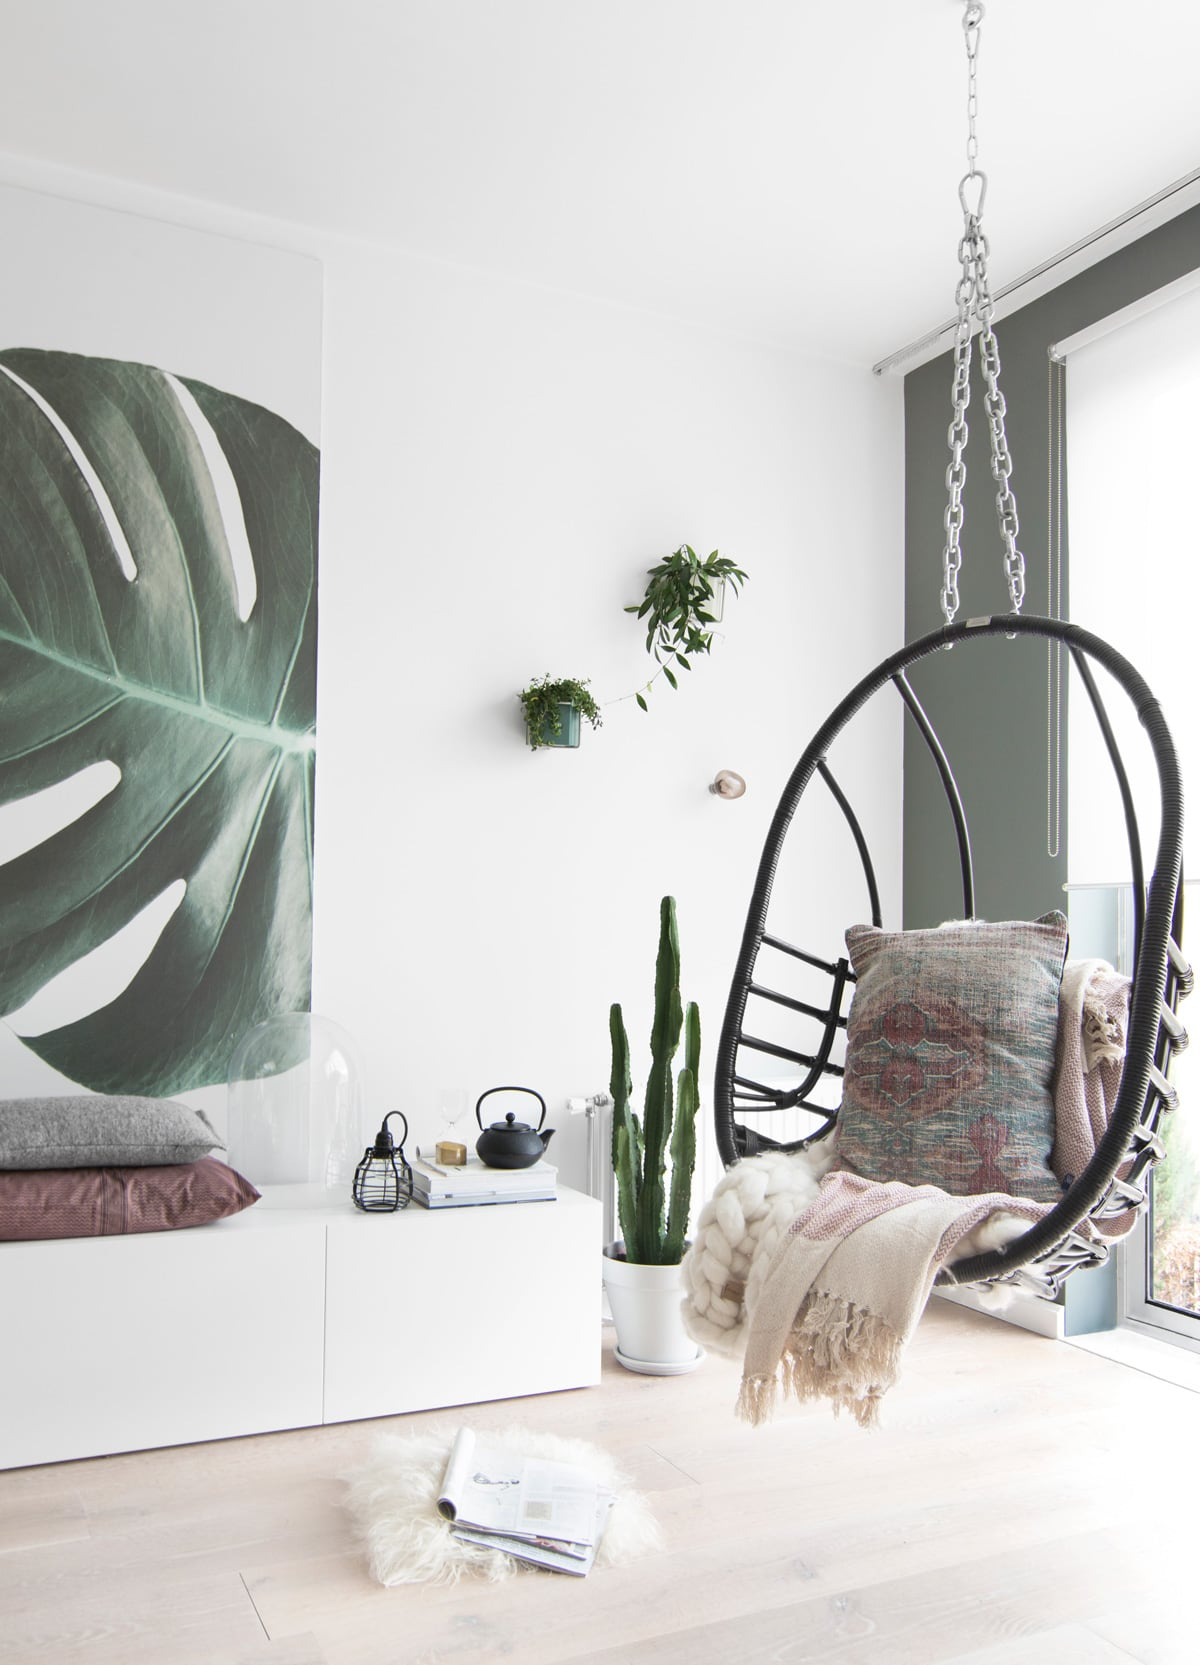 Botanisch behang monstera - Tanja van Hoogdalem